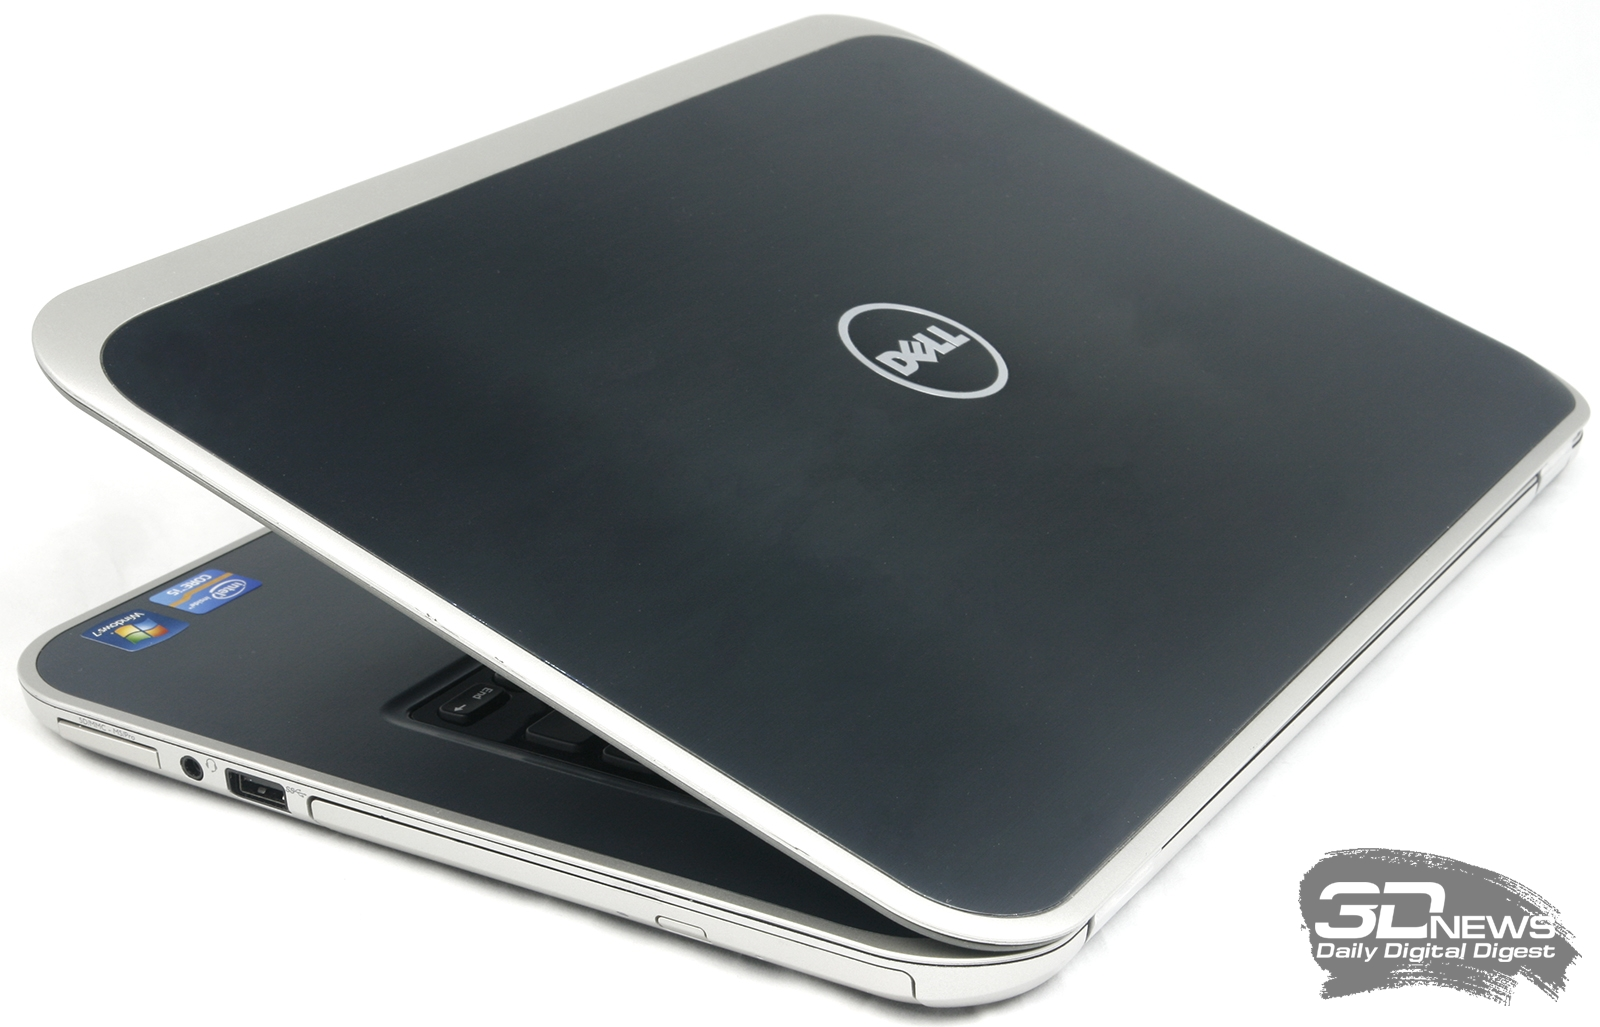 Dell Inspiron 14Z 5423 Notebook Intel Turbo Boost Technology Monitor Download Driver